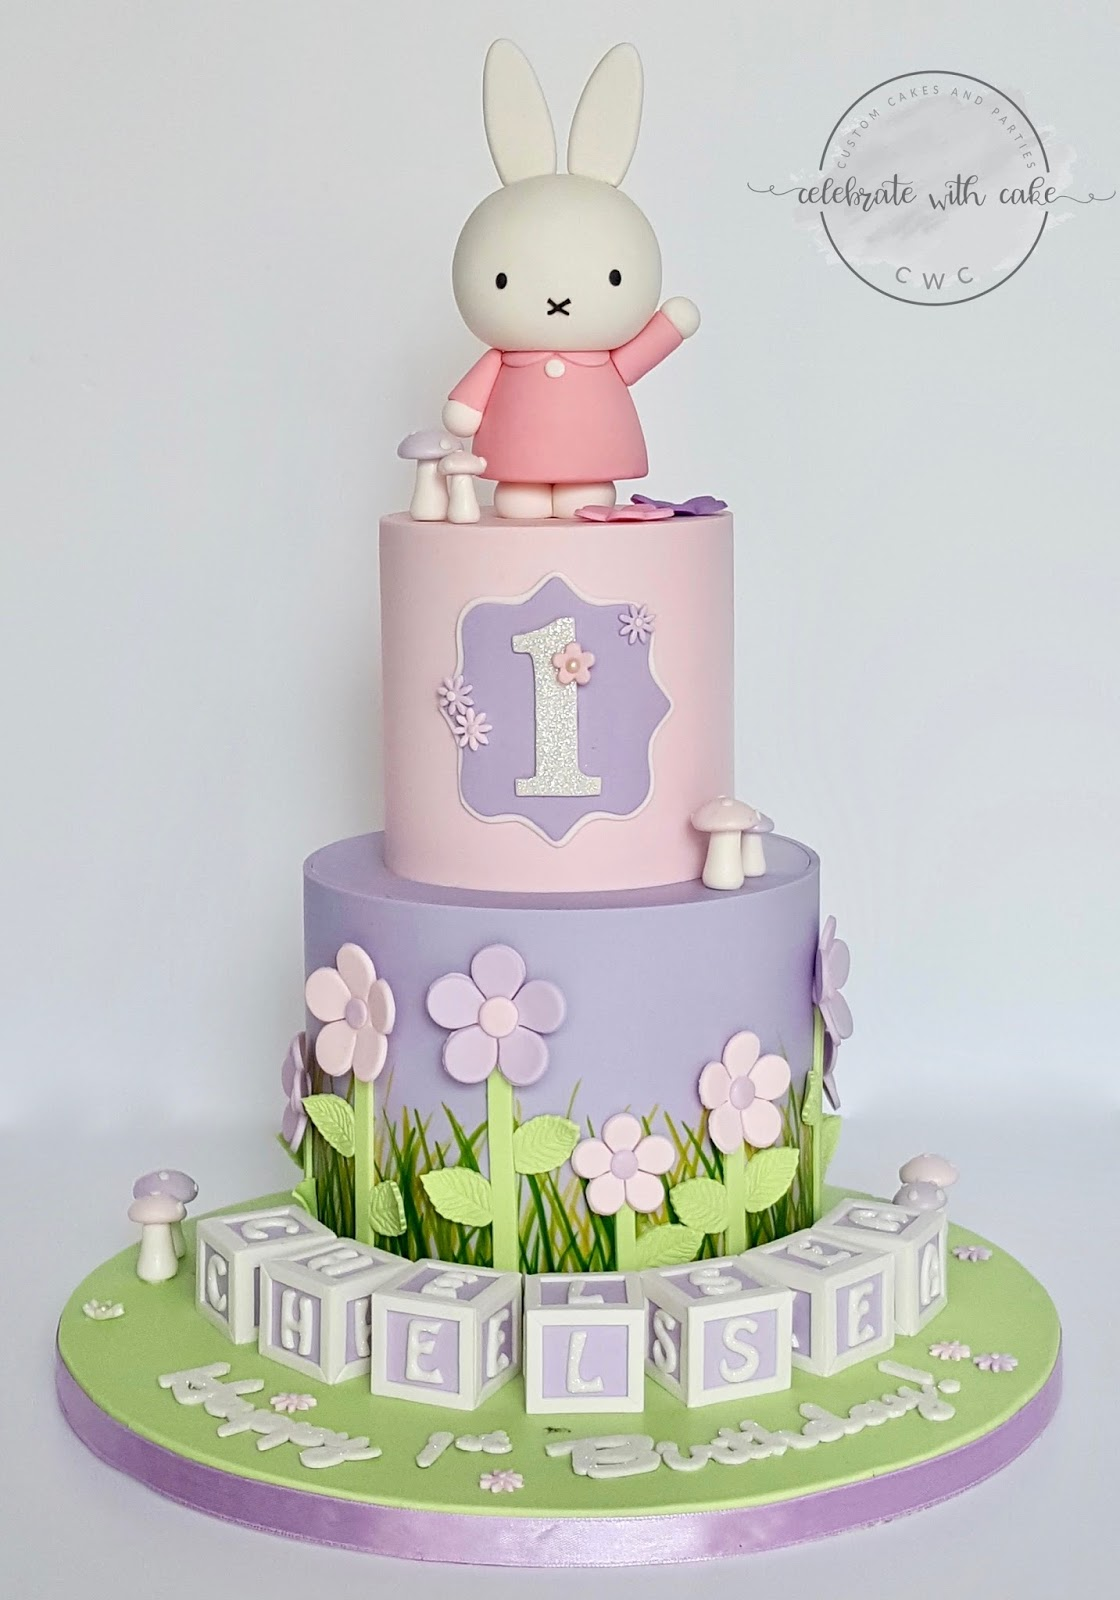 Celebrate With Cake Miffy In The Garden 1st Birthday